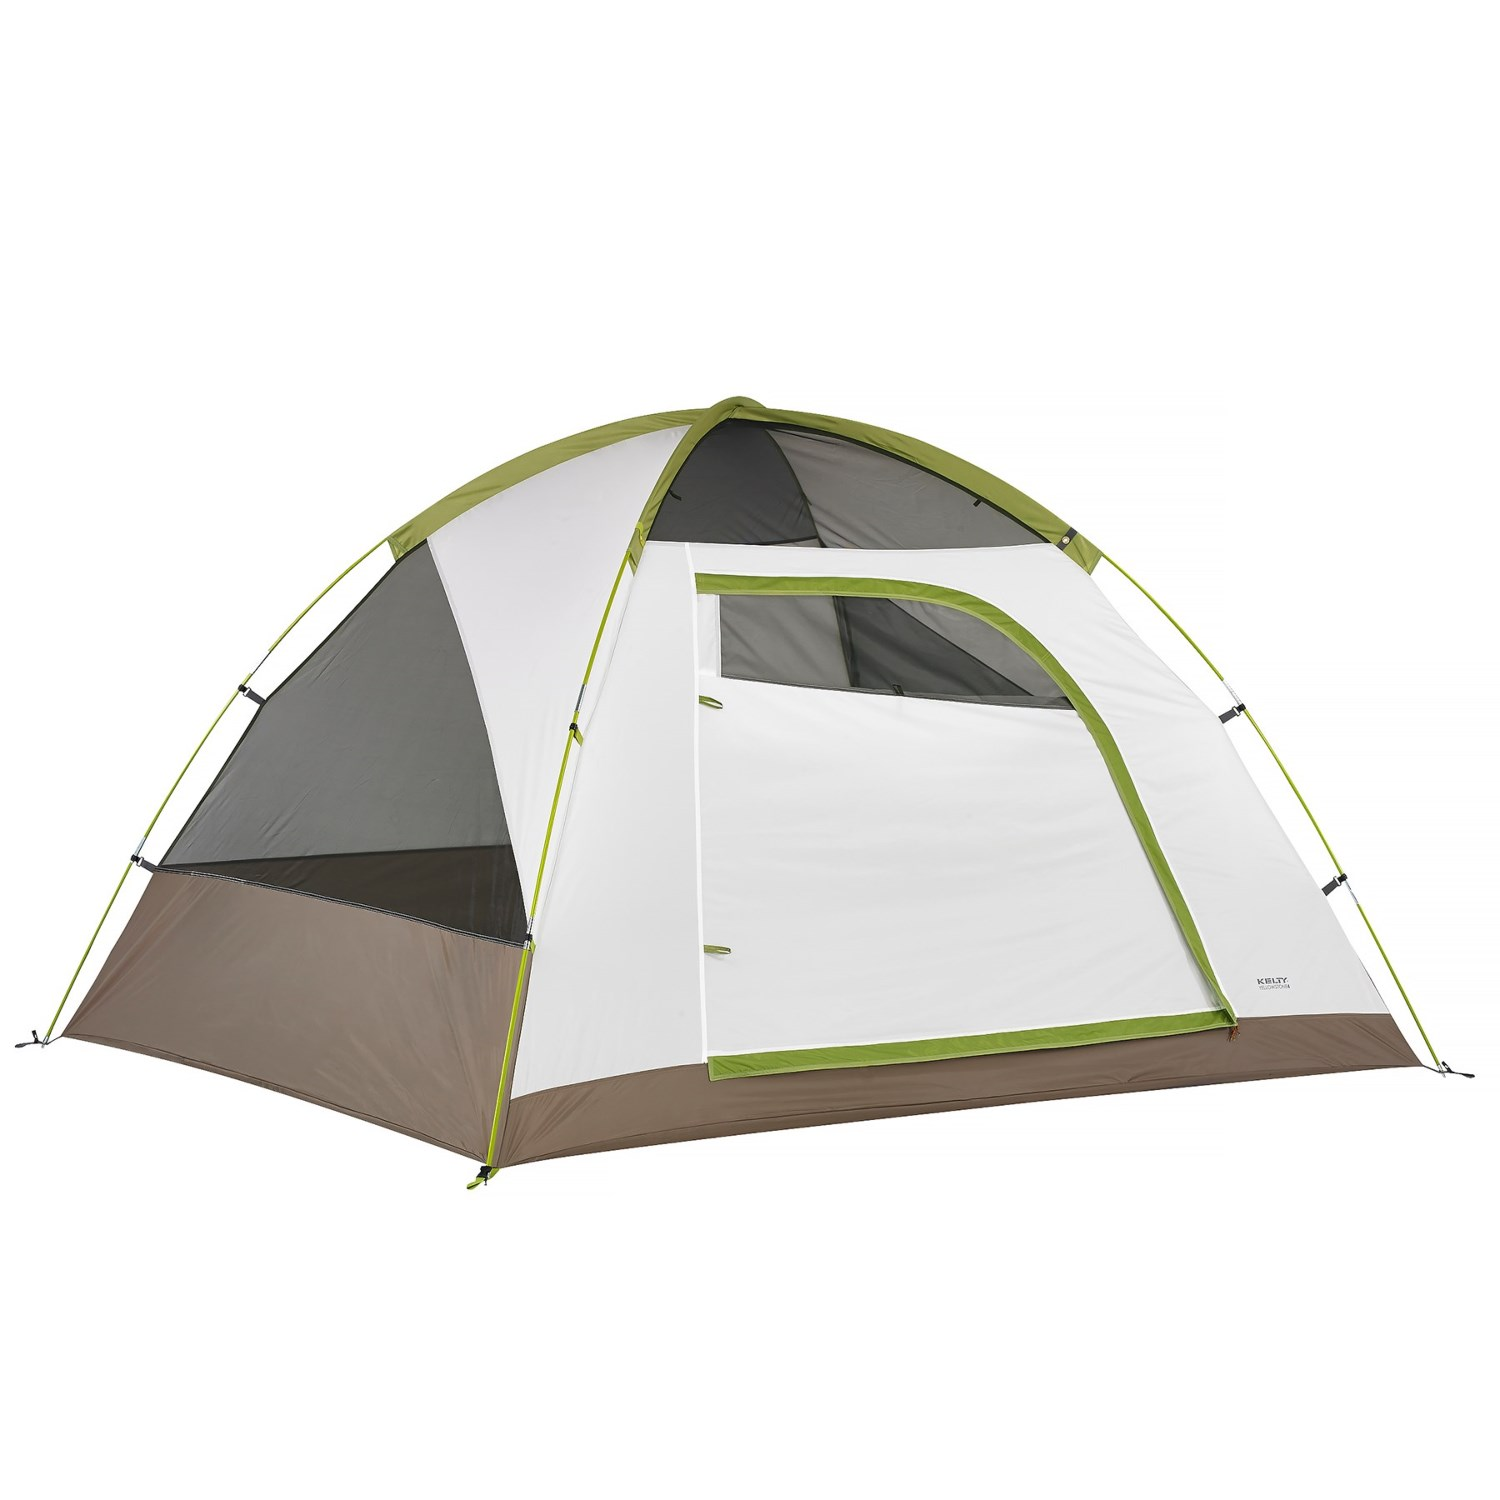 Kelty Yellowstone 4 Tent - 4-Person 3-Season in See Photo ...  sc 1 st  Sierra Trading Post & Kelty Yellowstone 4 Tent - 4-Person 3-Season - Save 57%